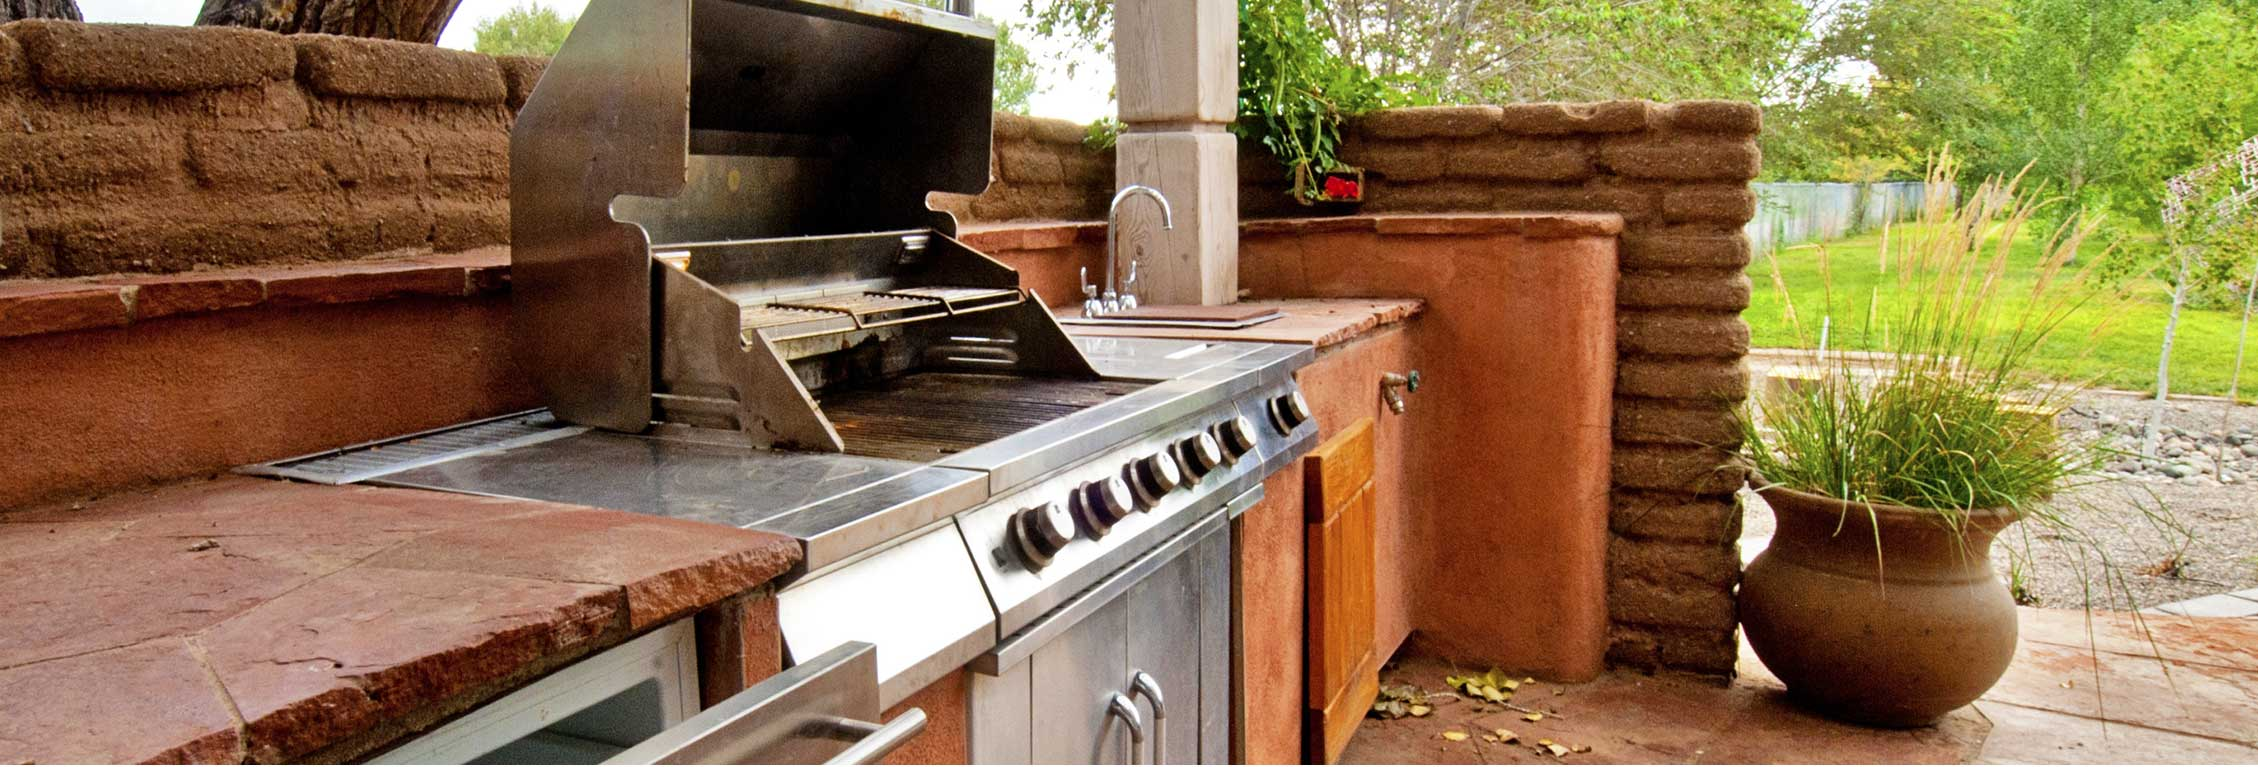 how to build outdoor kitchen island how to build an outdoor kitchen island with a construction 8520